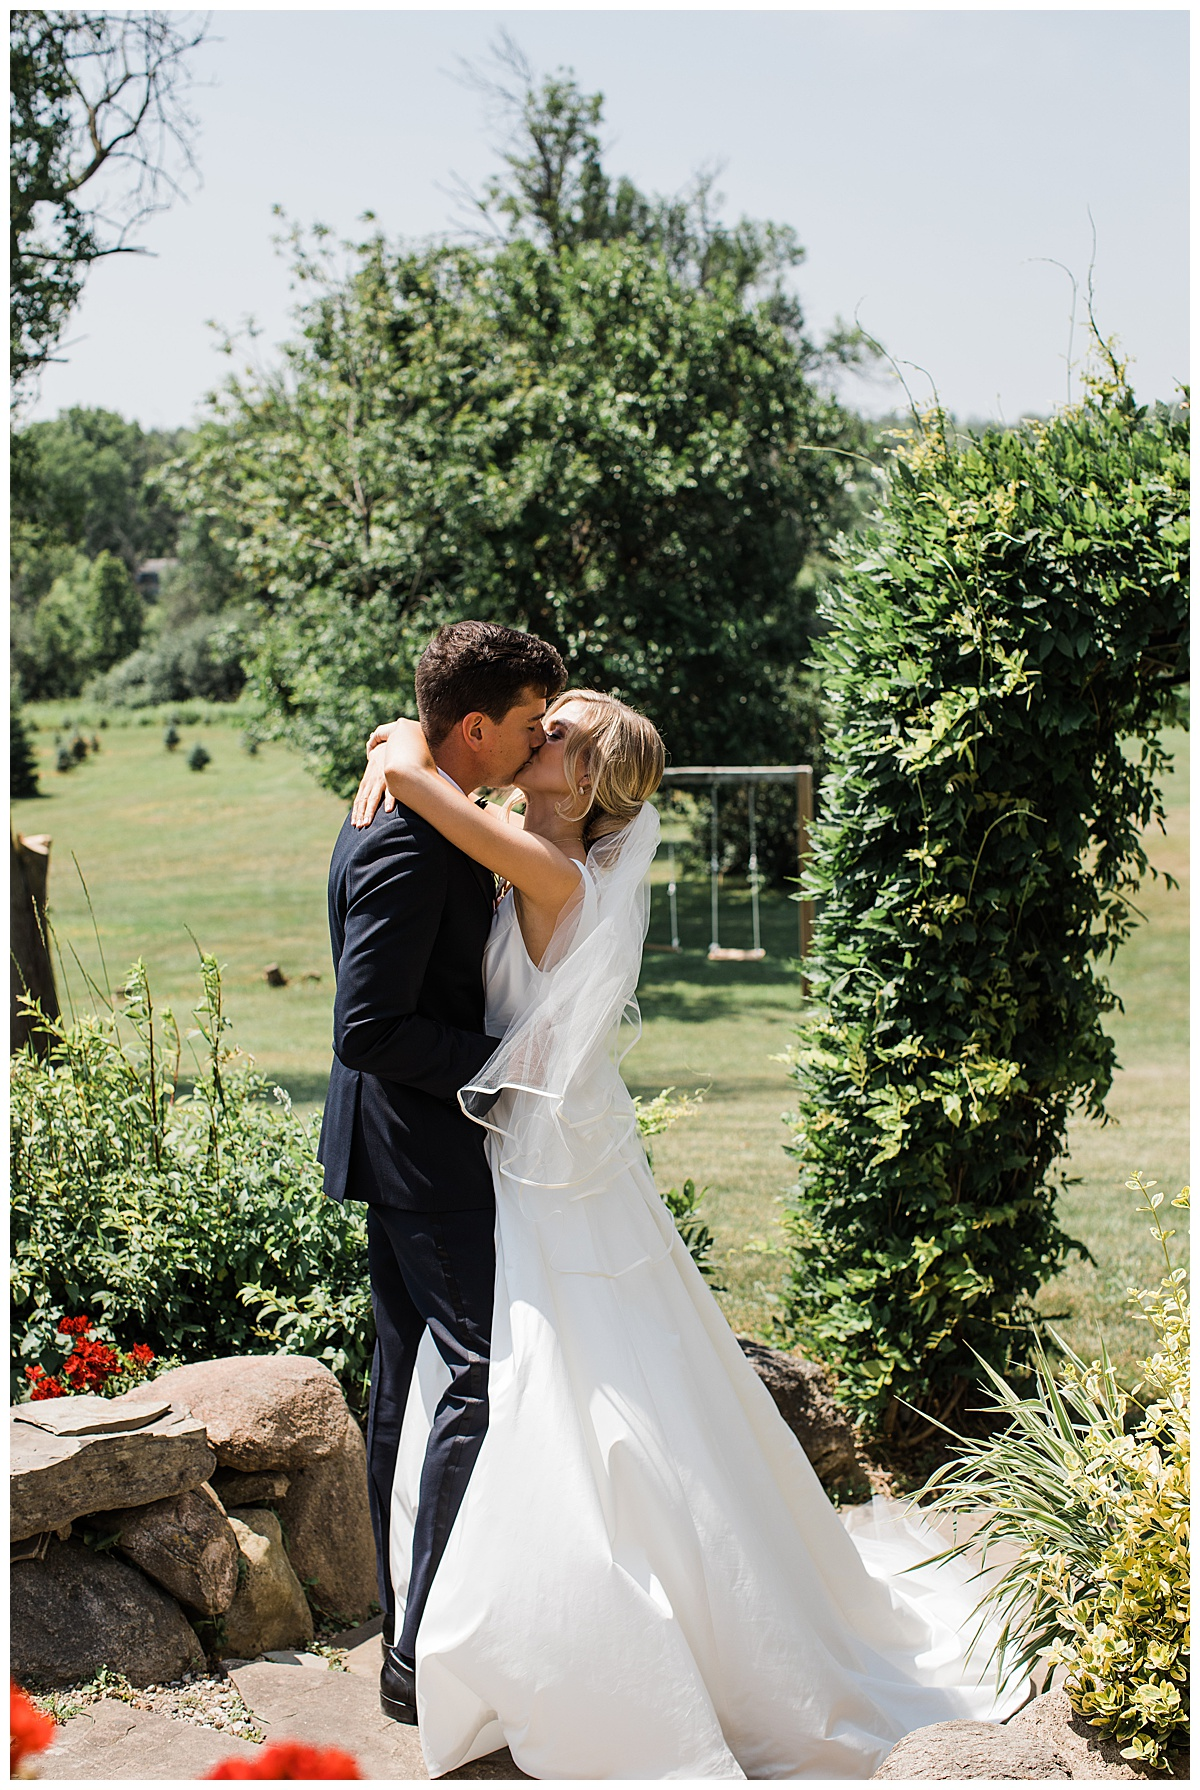 Kiss after first look  Ontario wedding  Ontario wedding photographer  Toronto wedding photographer  3photography